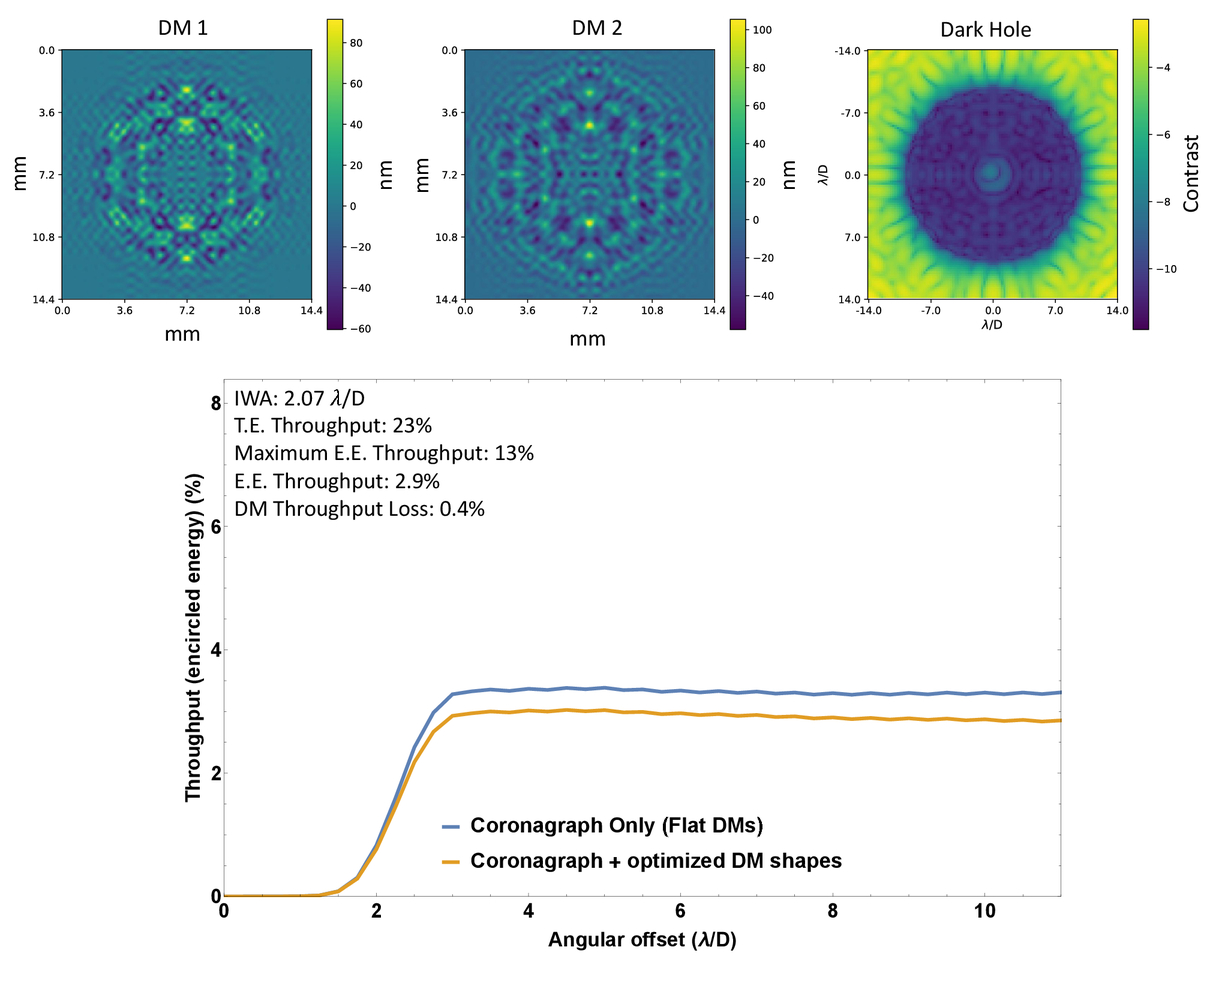 Optimal deformable mirror and pupil apodization combinations for